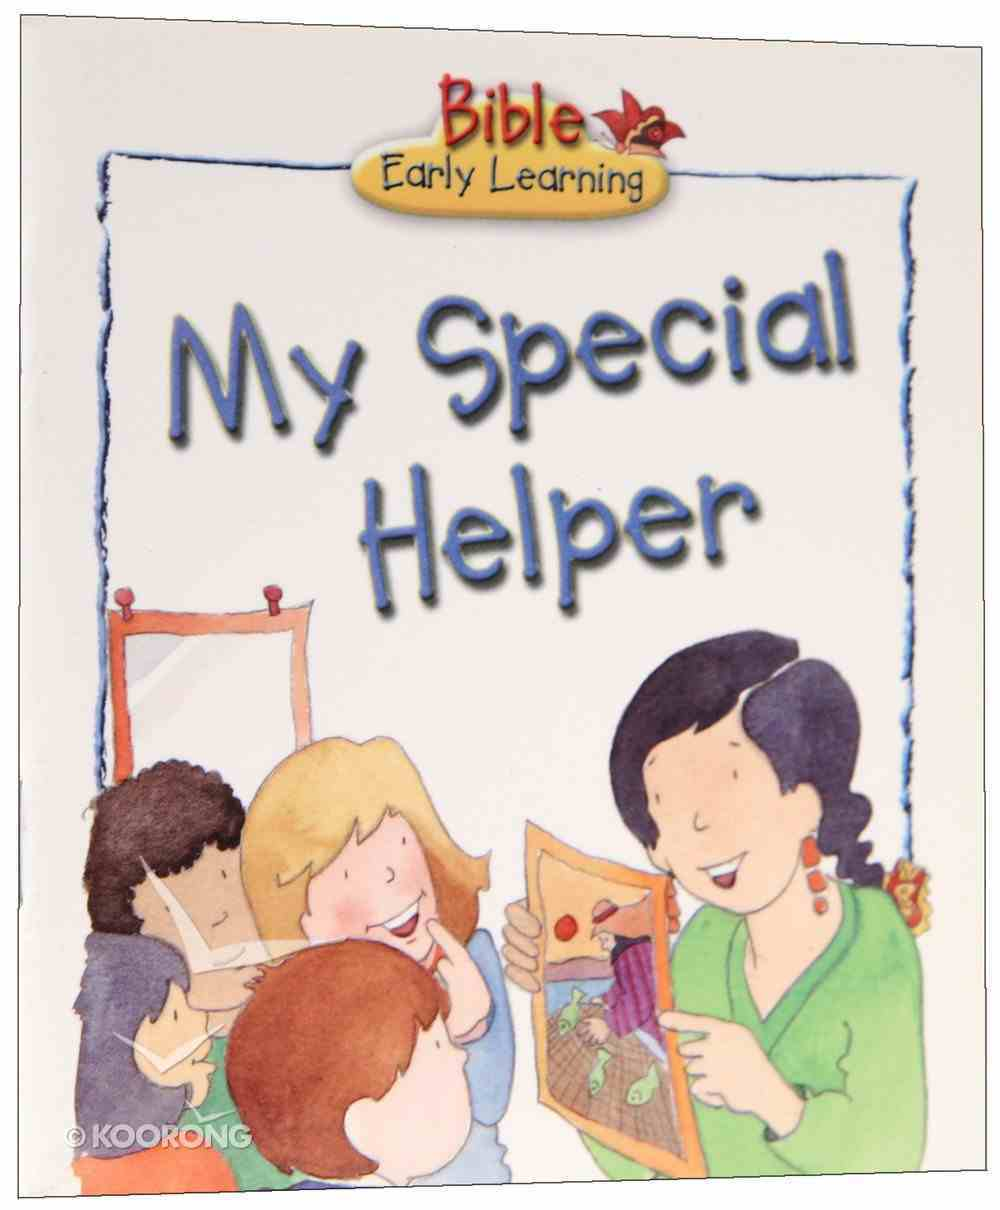 My Special Helper (Bible Early Learning Series Ii) Paperback